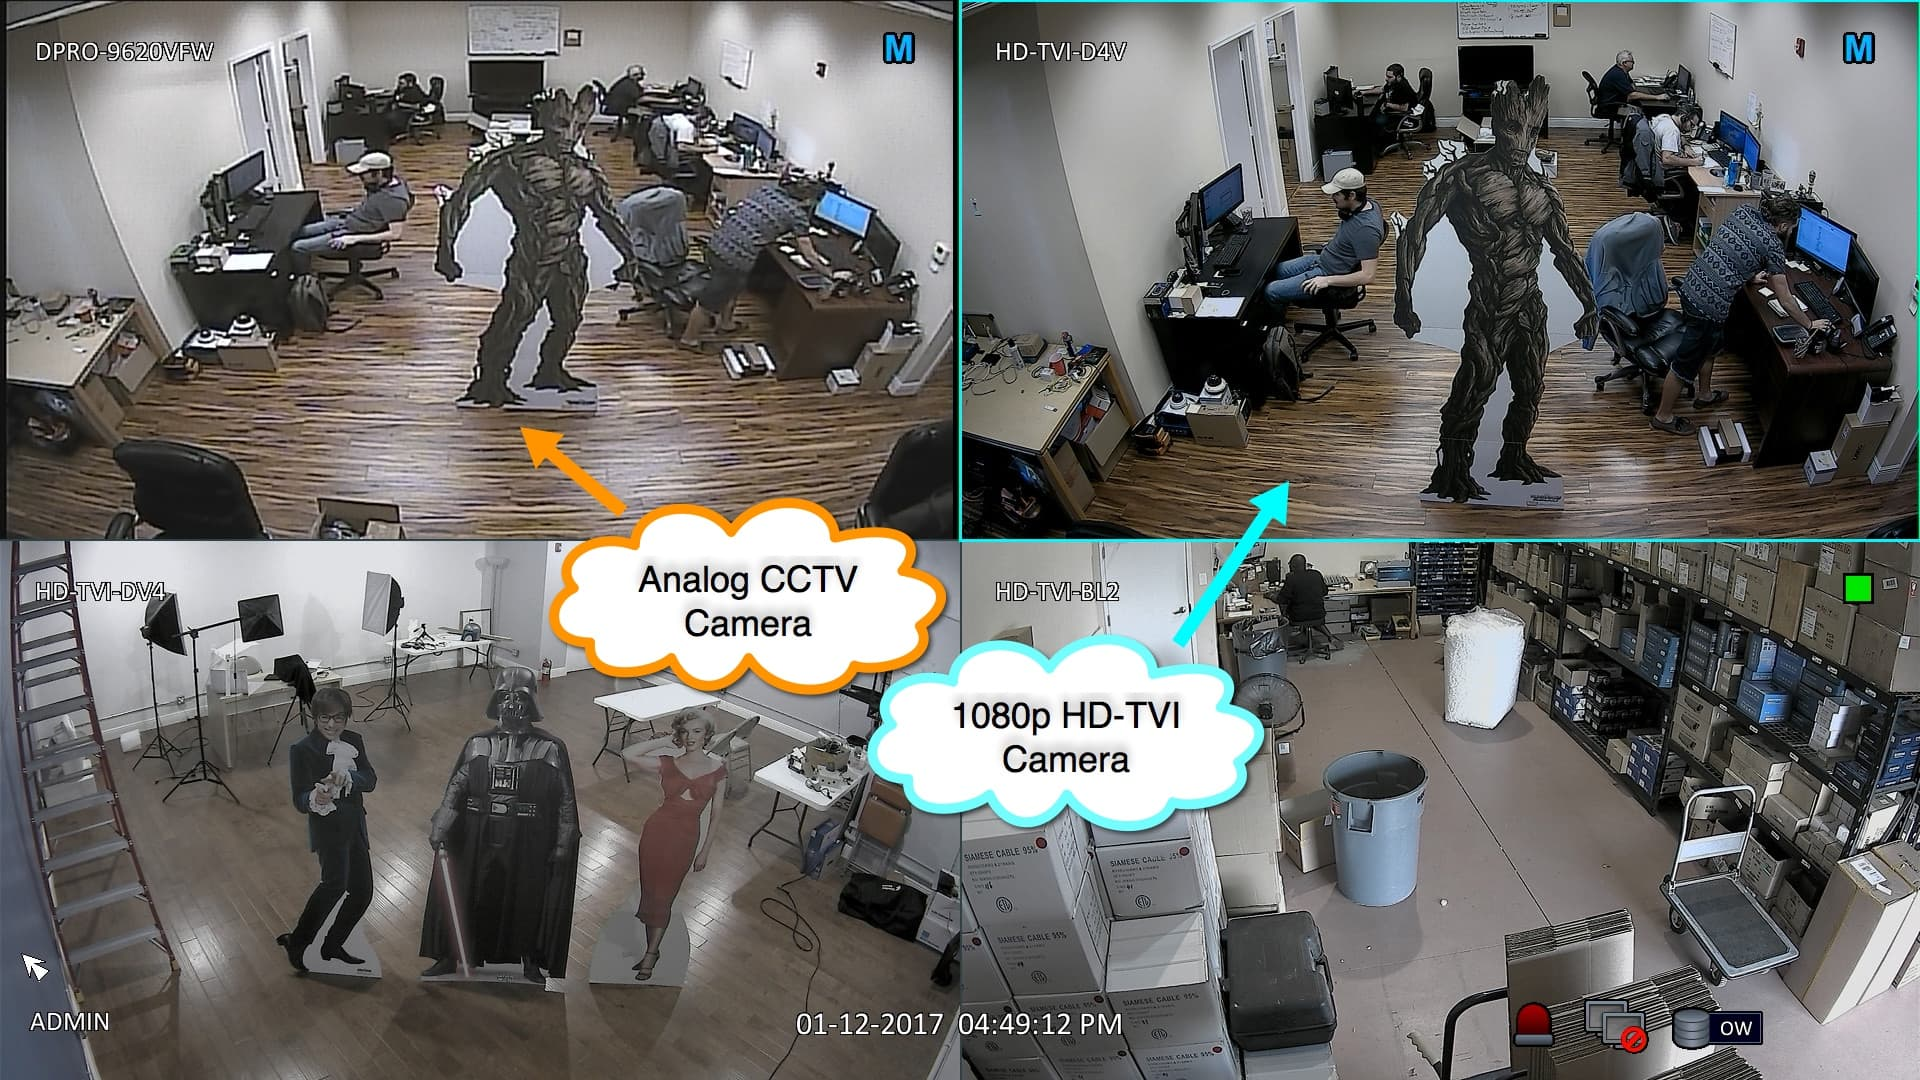 Are Hd Tvi Security Cameras Better Than Analog Cctv Cameras